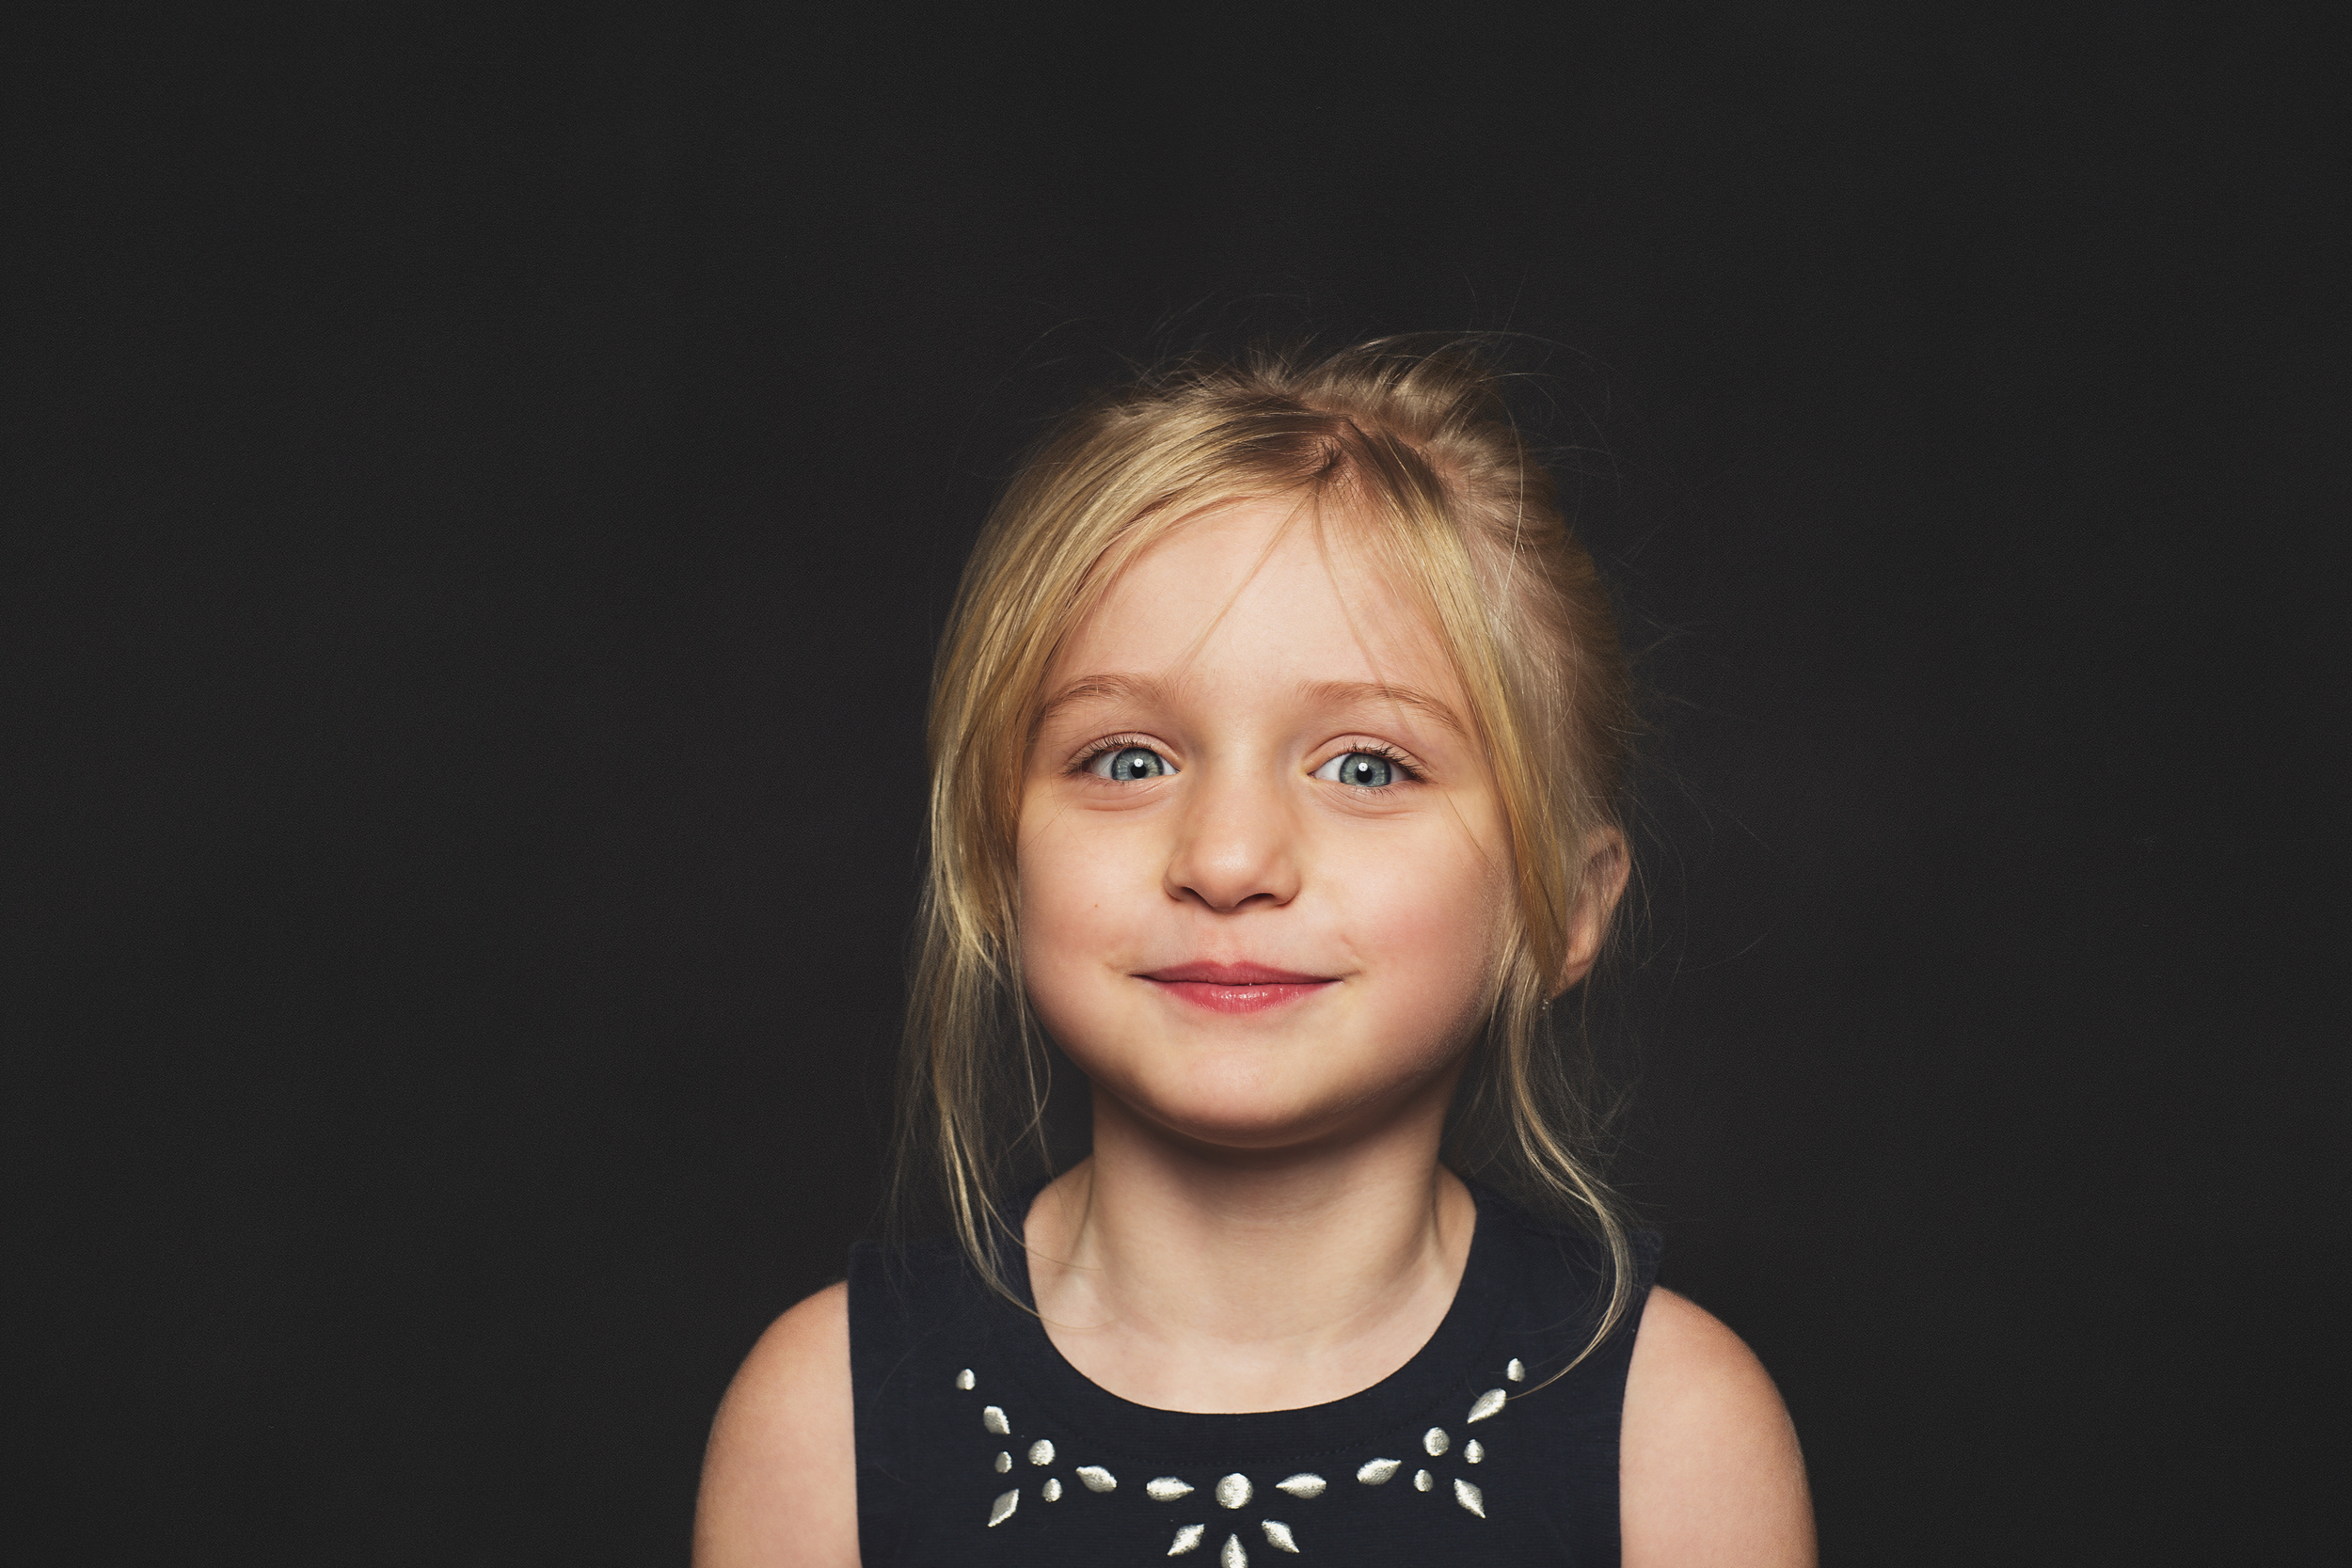 358 - This is the face of a kid that most likely ate nothing but cookies and sugar all day. She was seriously bouncing off the walls.